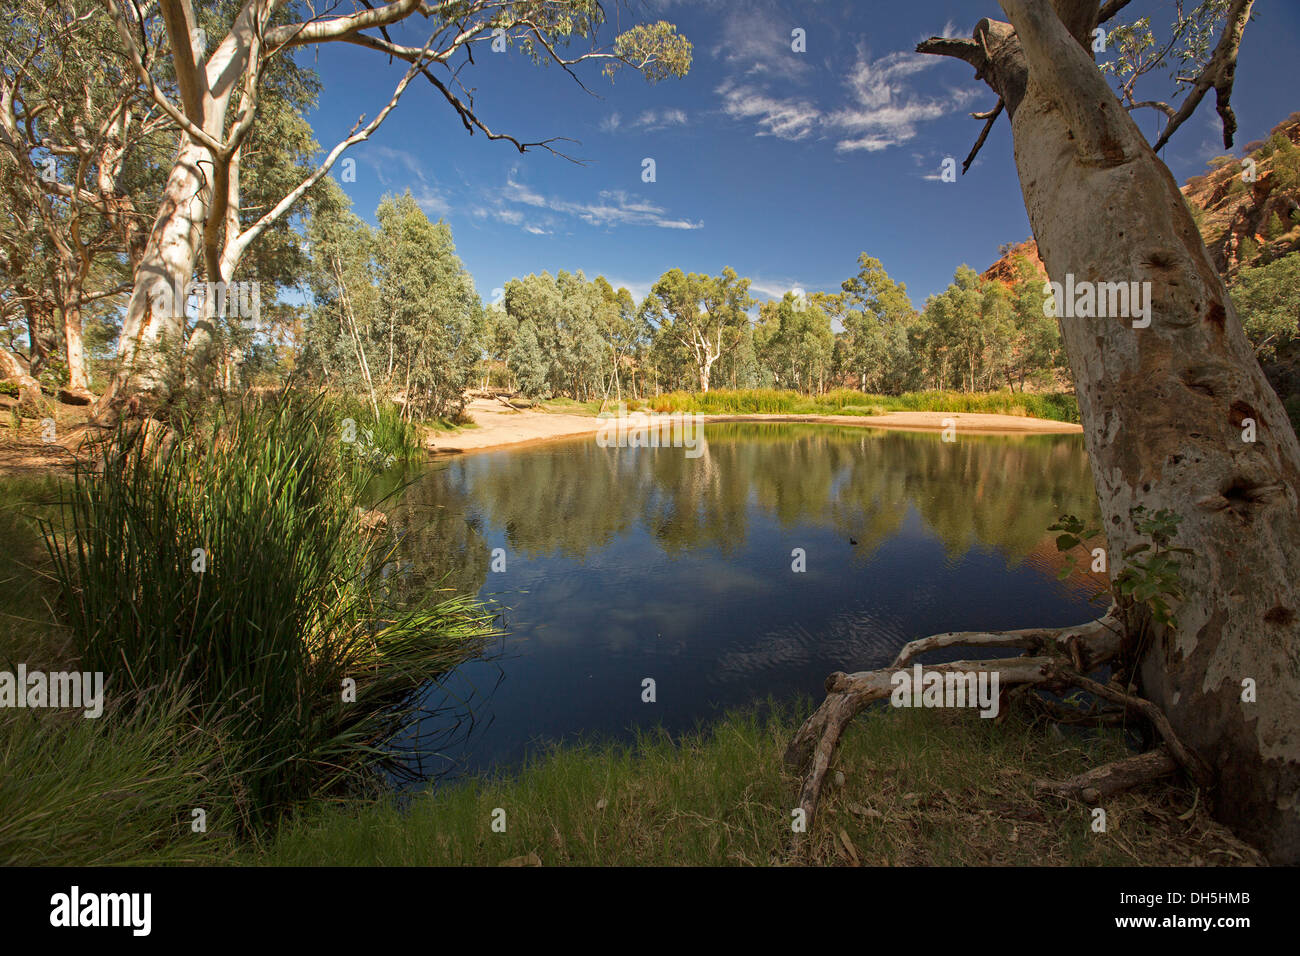 Picturesque outback landscape with blue pool / oasis at Ellery Creek Big Hole in West MacDonnell ranges near Alice Springs NT - Stock Image